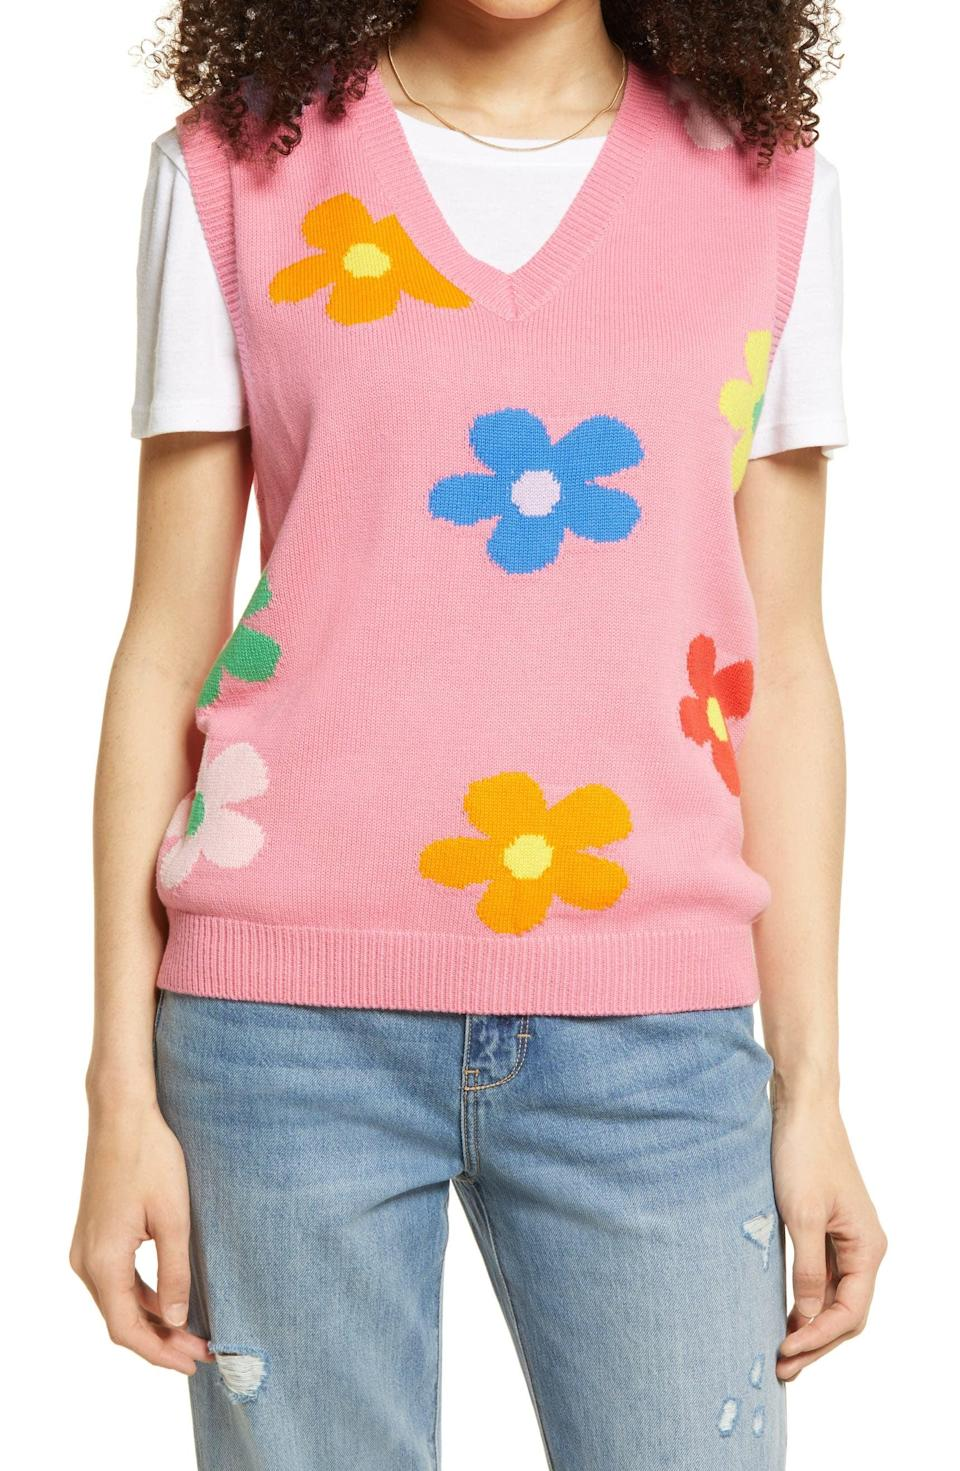 <p>Style this <span>Be Proud By BP Daisy Gender Inclusive Sweater Vest</span> ($45) with a cute tennis skirt or your favorite denim shorts.</p>